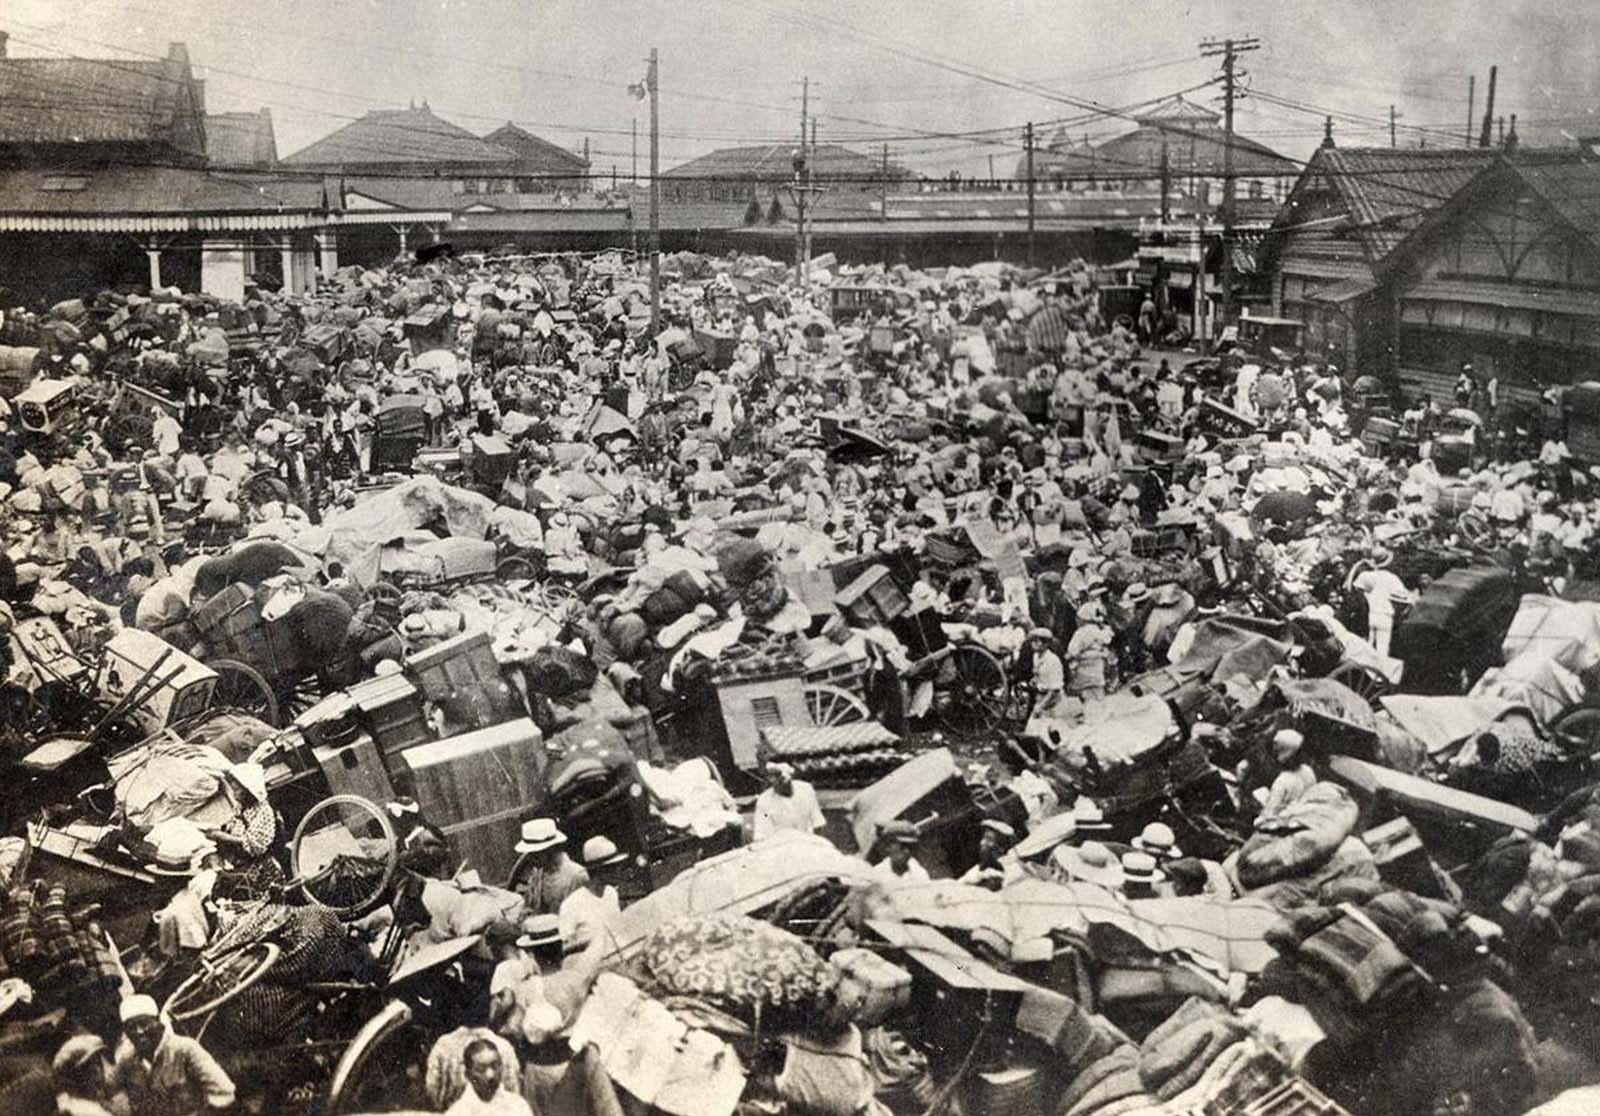 Congestion of refugees fleeing their homes in the Ueno vicinity in Tokyo.